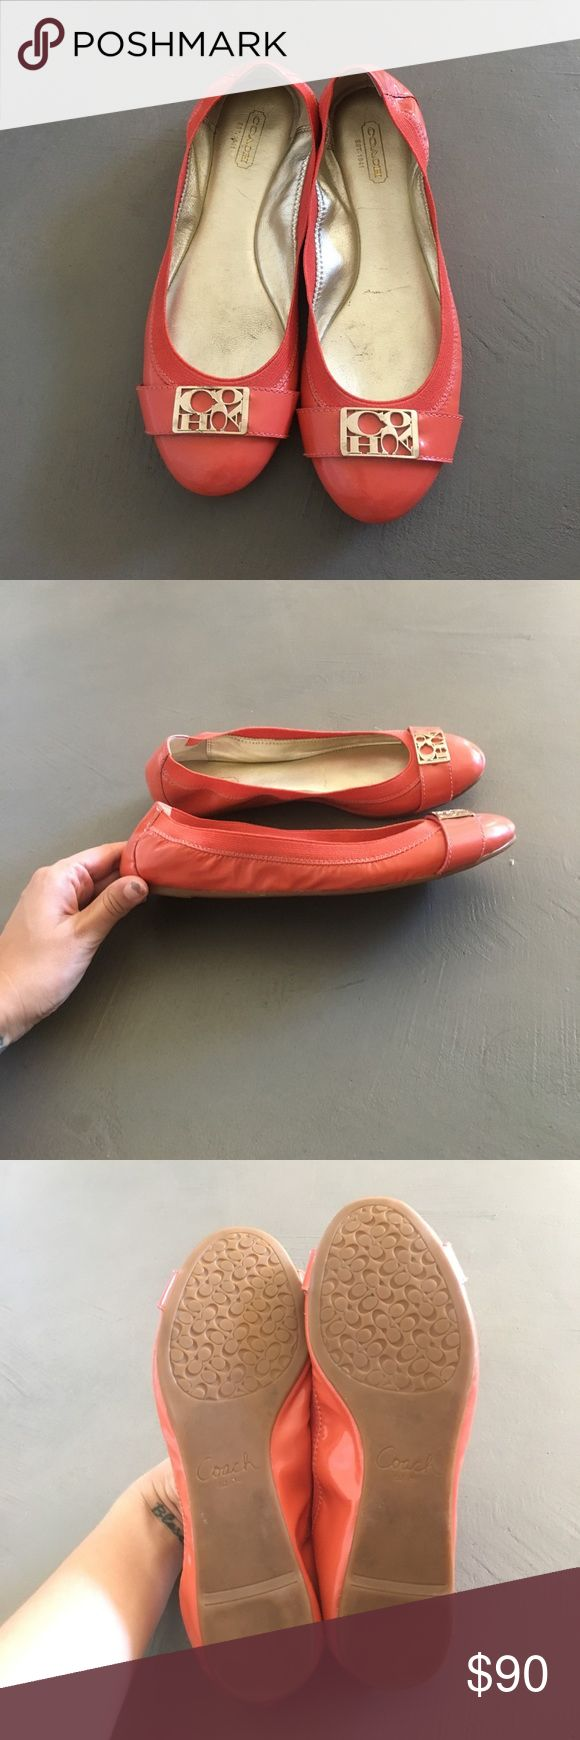 Coach Flats Coach flats in coral. Gold toe detailing. Great tread. Coach Shoes Flats & Loafers